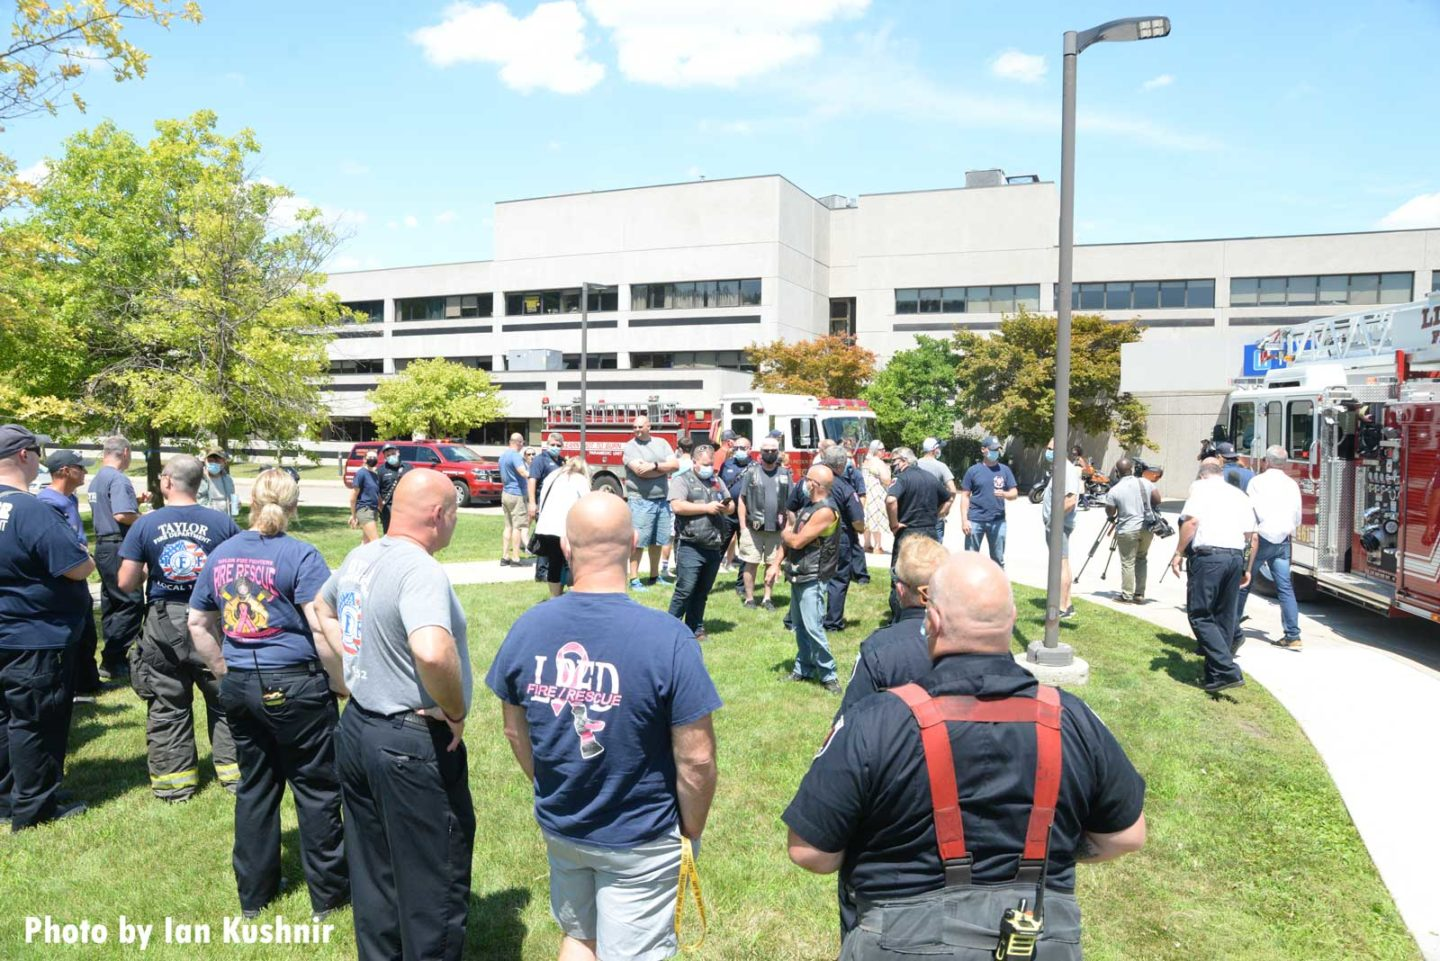 Injured firefighter leaving hospital greeted by supporters